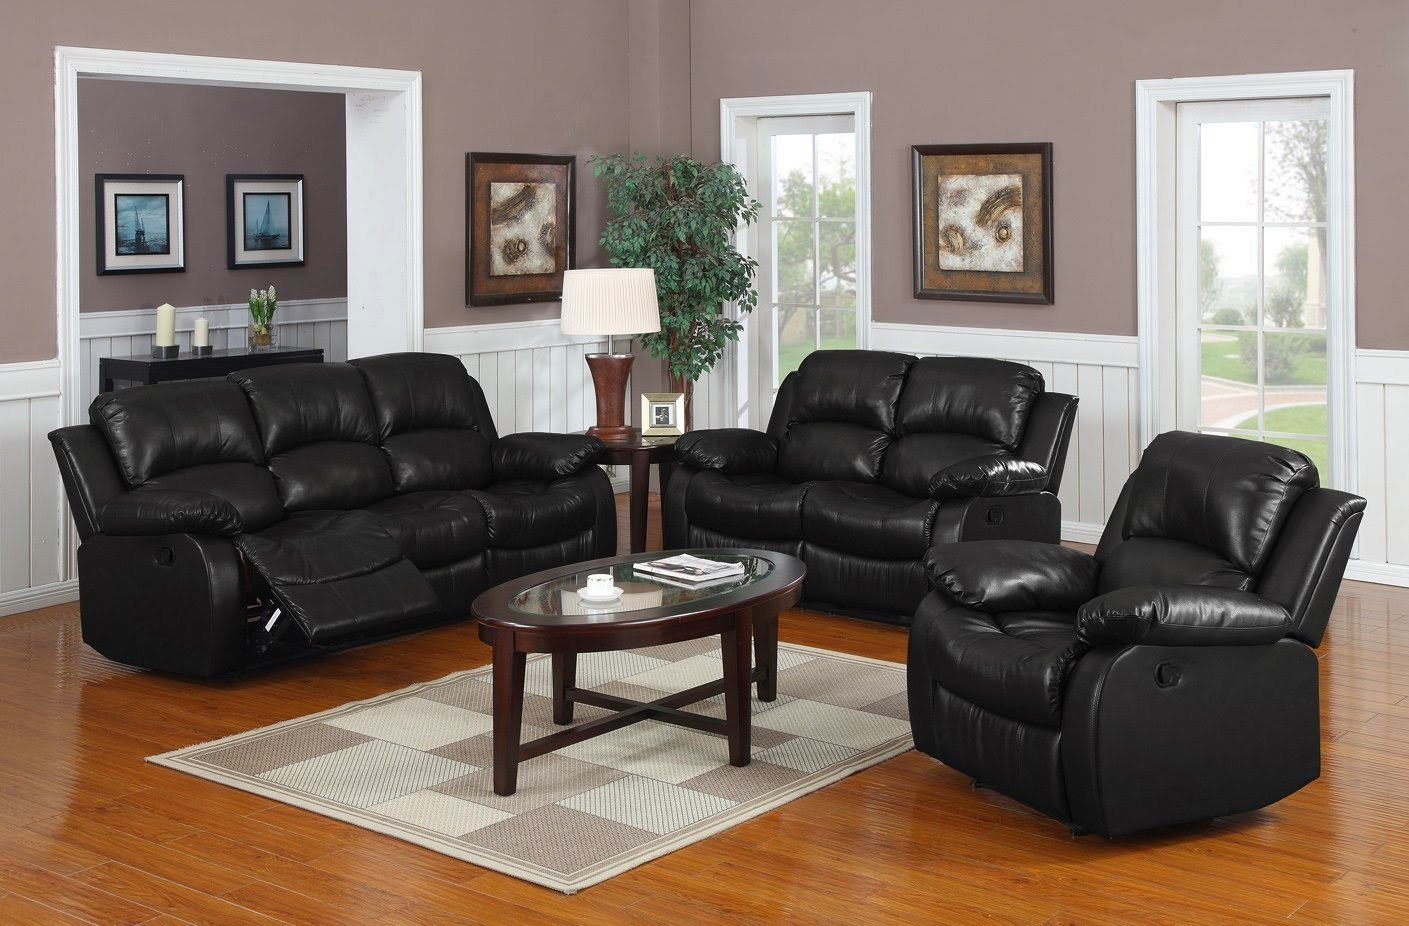 Cheap Leather Sofa. Leather Sofa